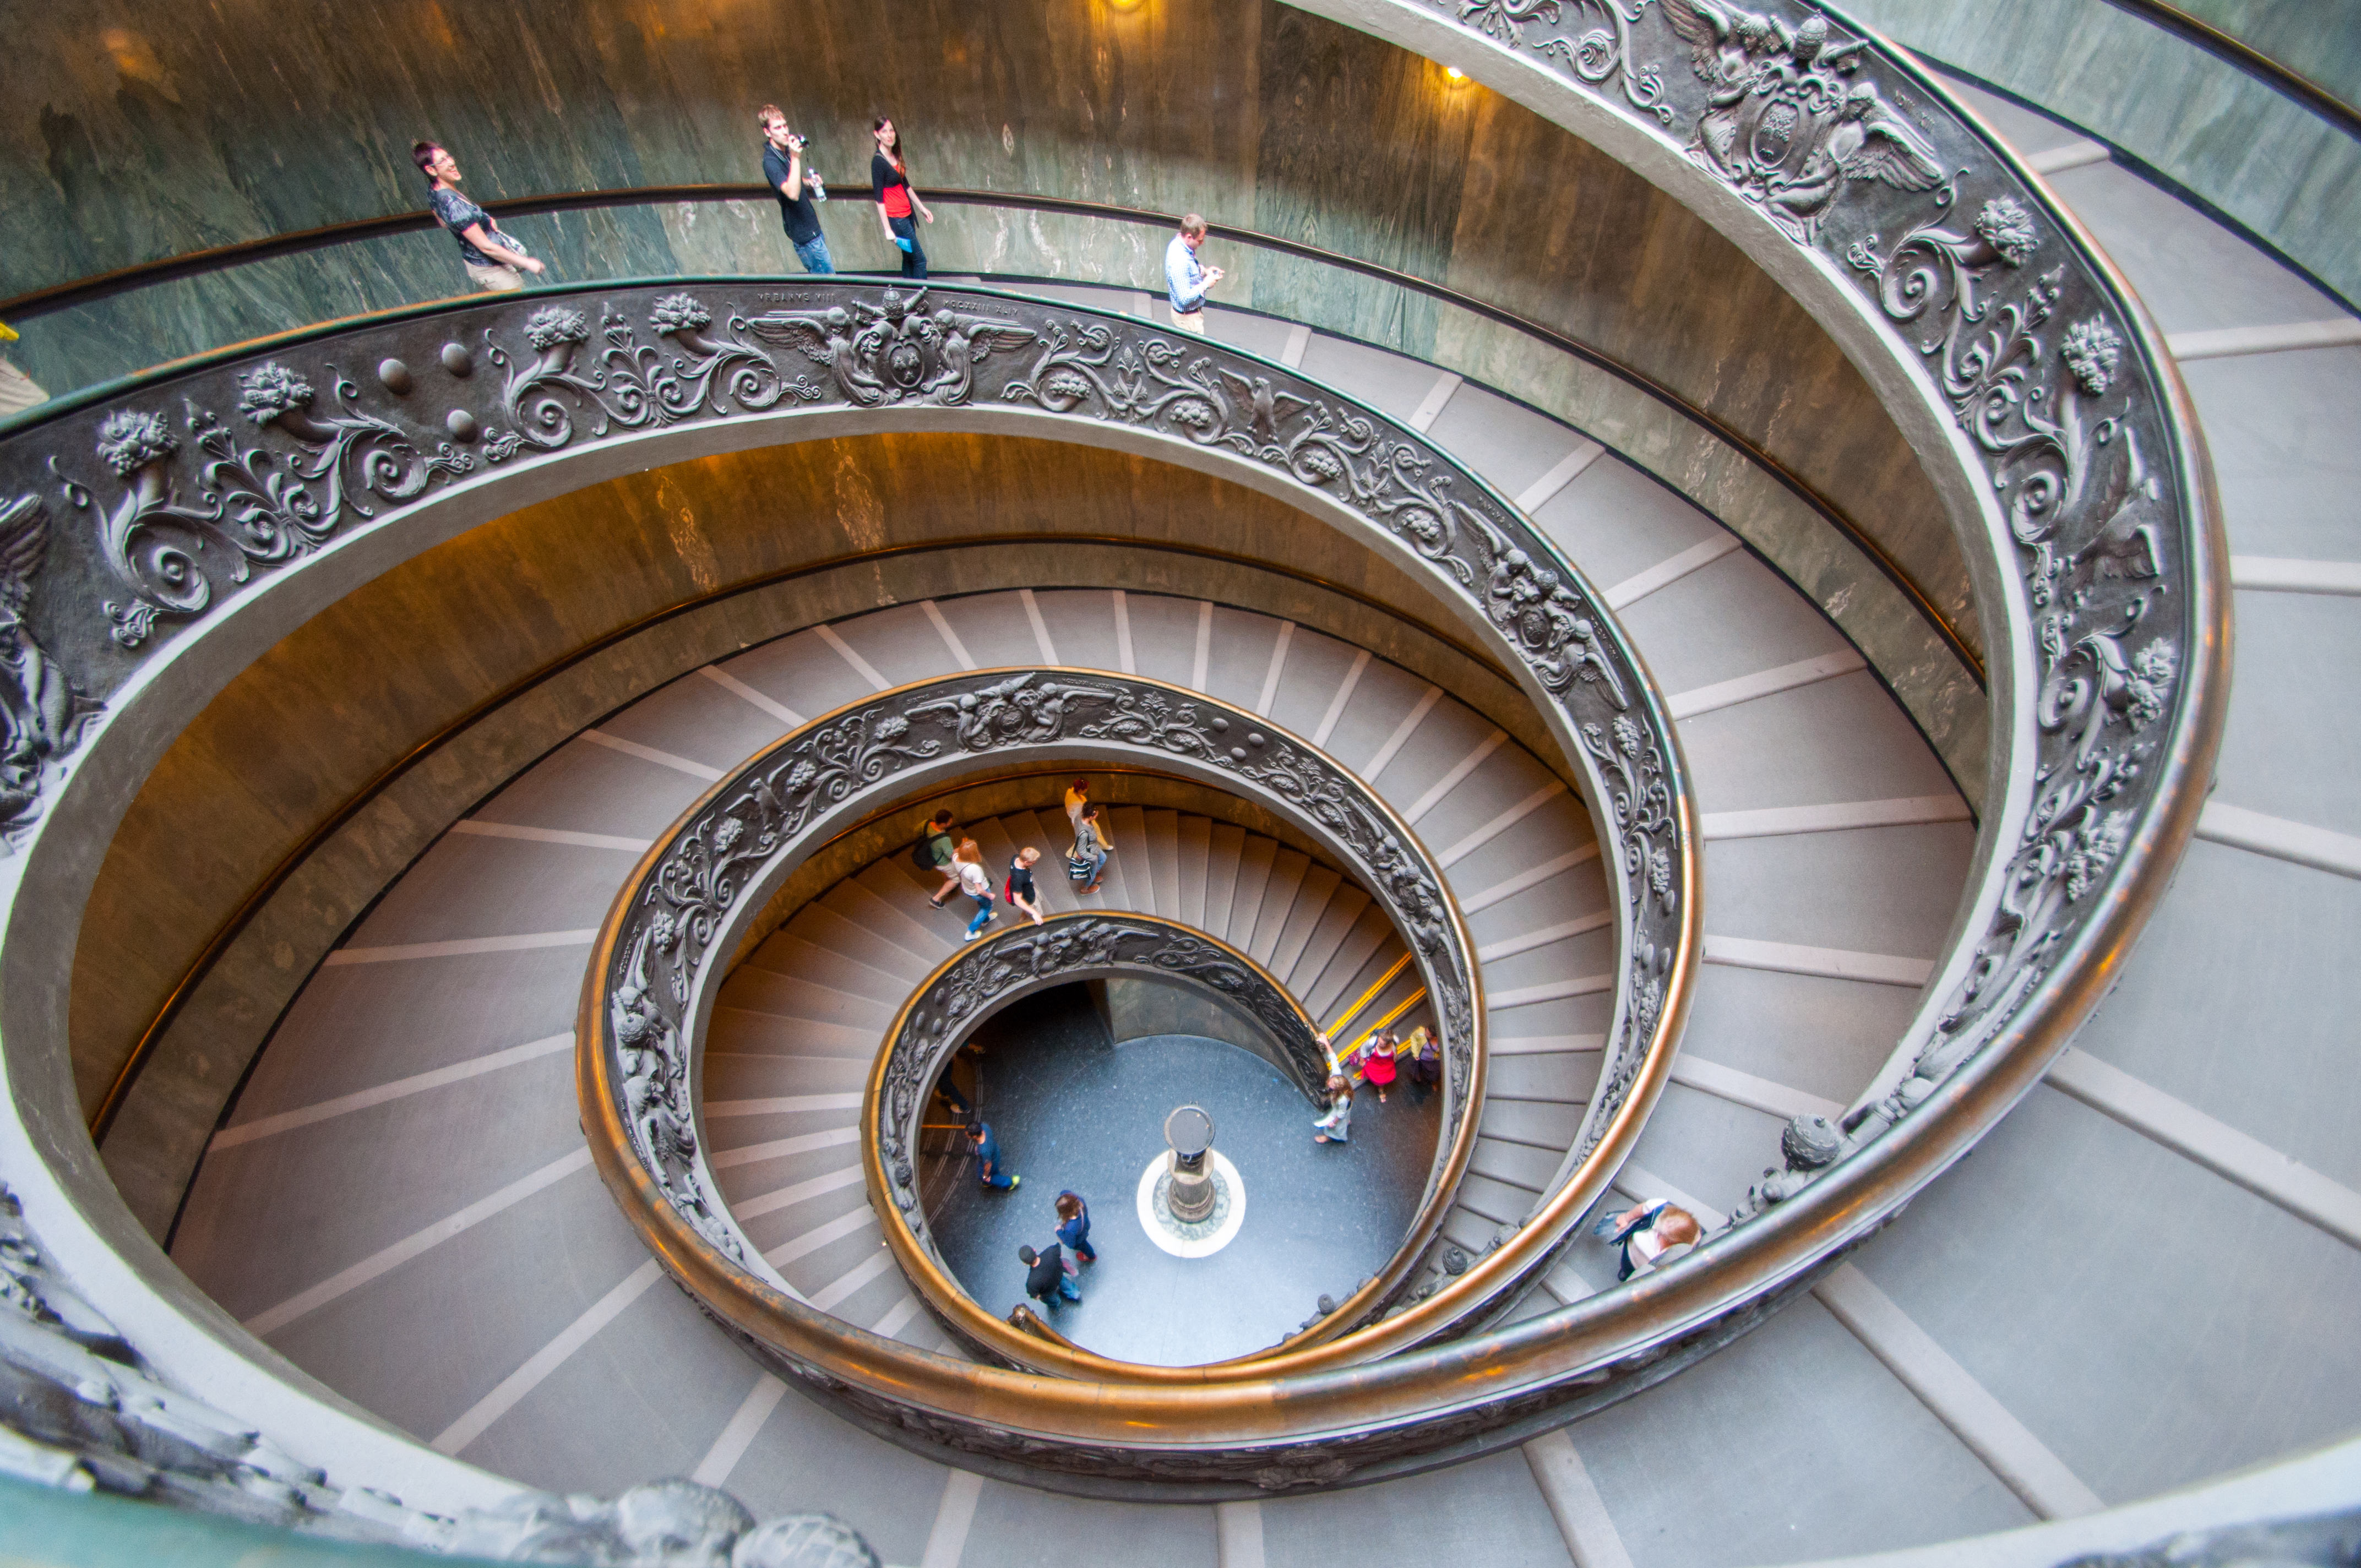 Spiral stairs in Rome